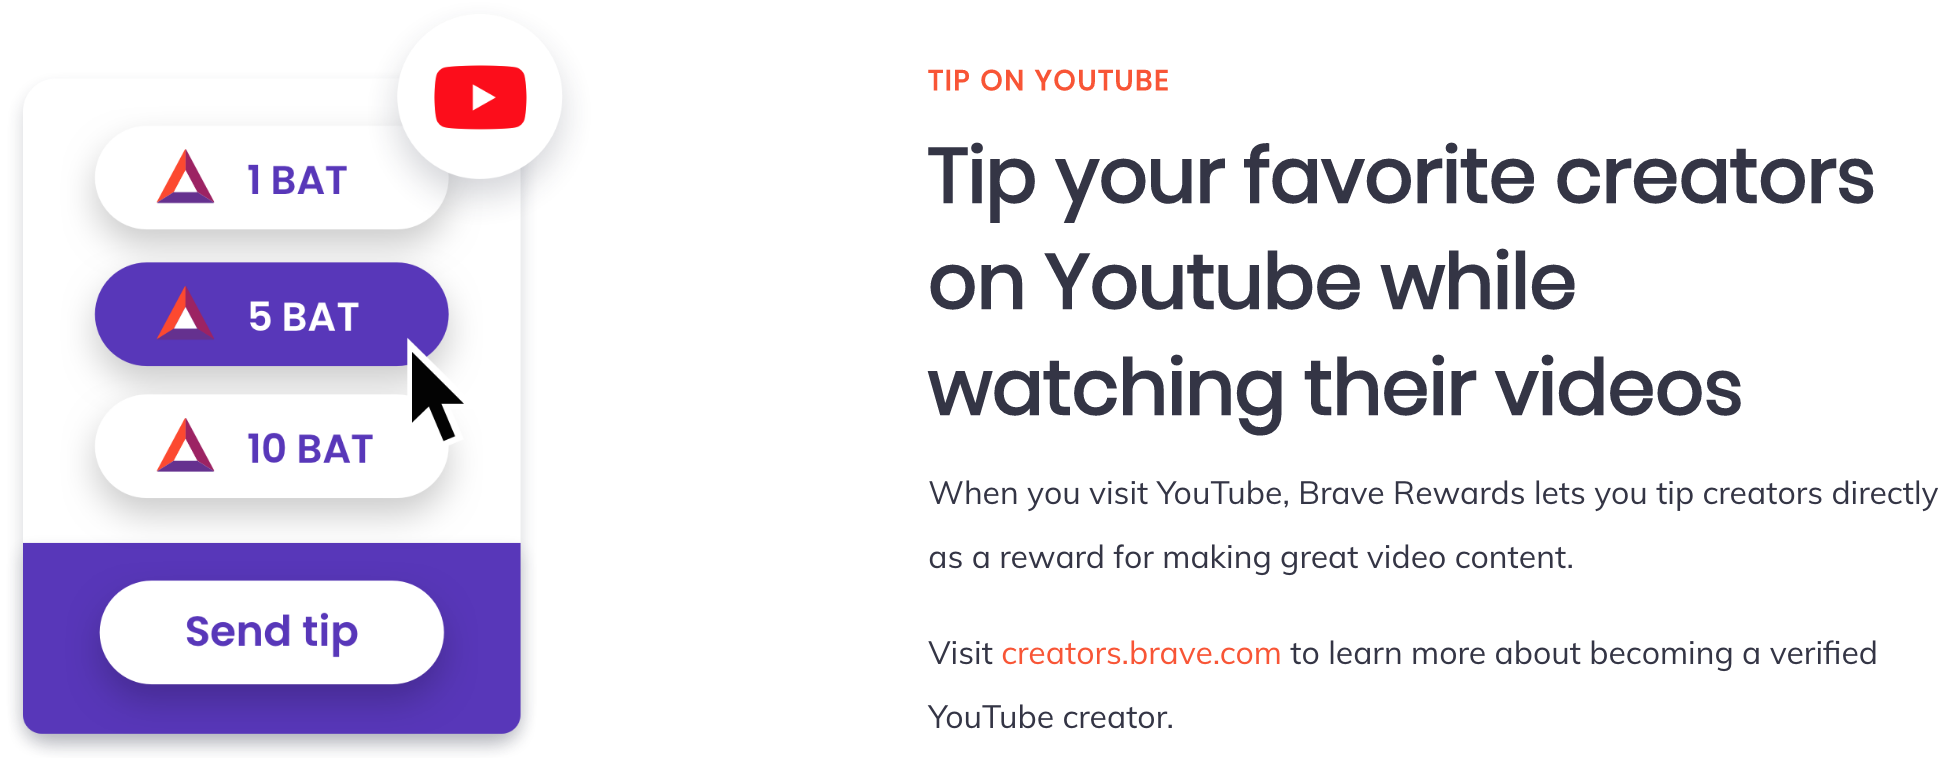 Brave Offers Crypto Tipping Feature for Reddit and Vimeo